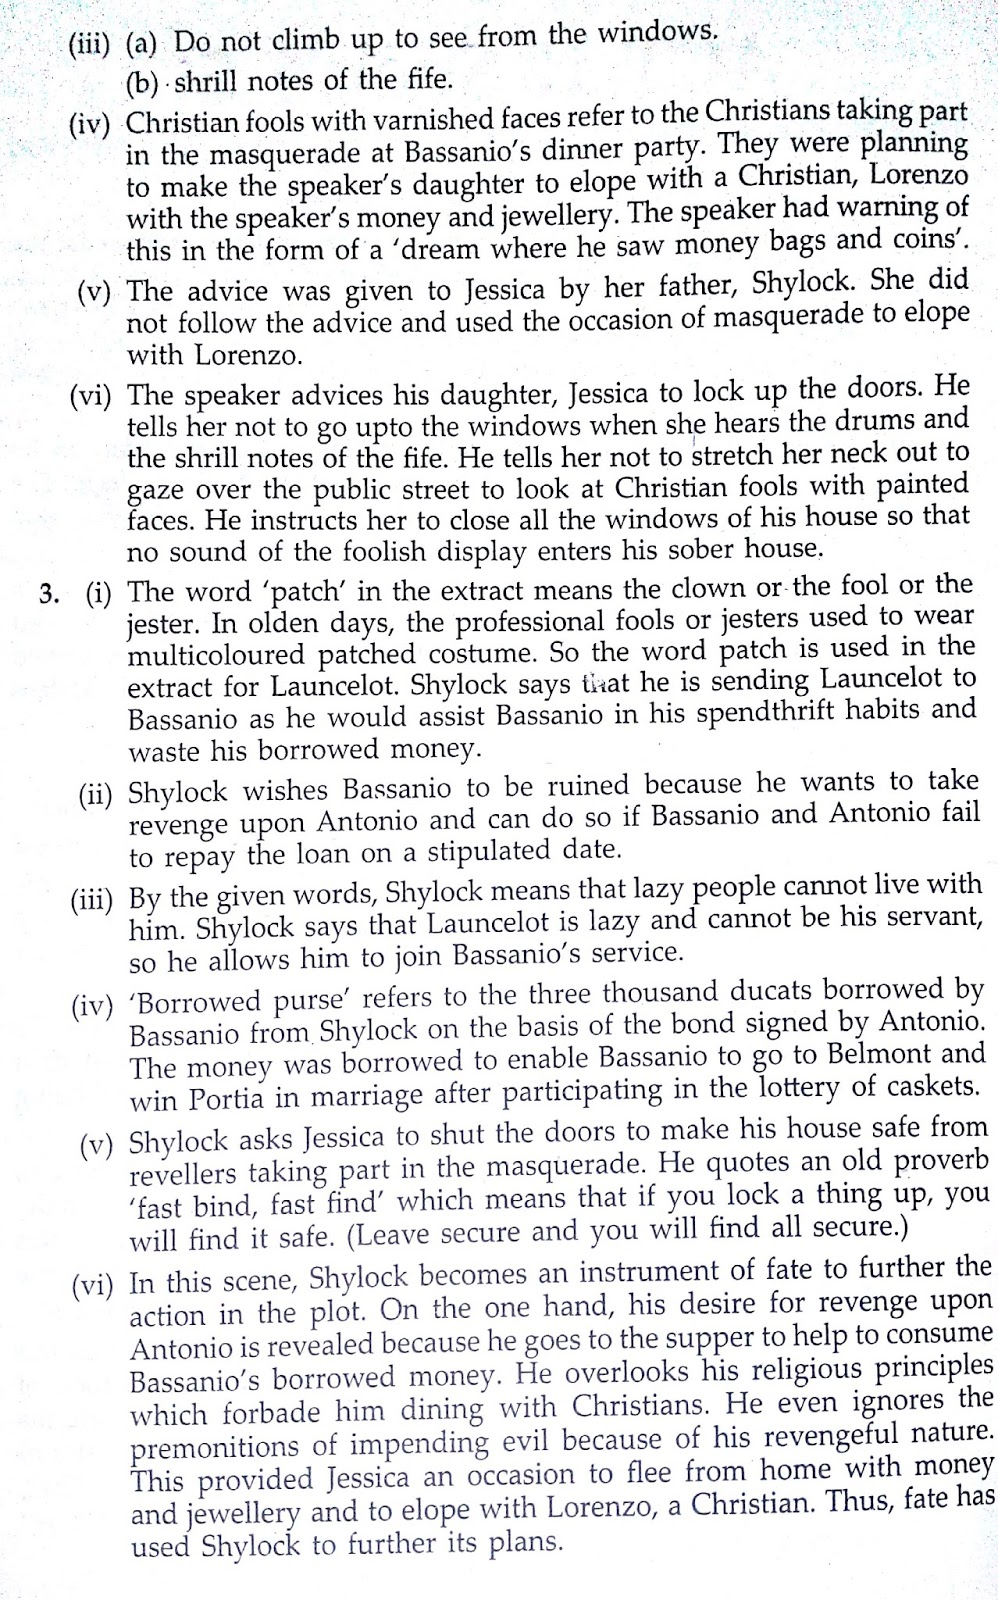 Workbook Answers/ Solutions of The Merchant of Venice, Act 2 Scene 5